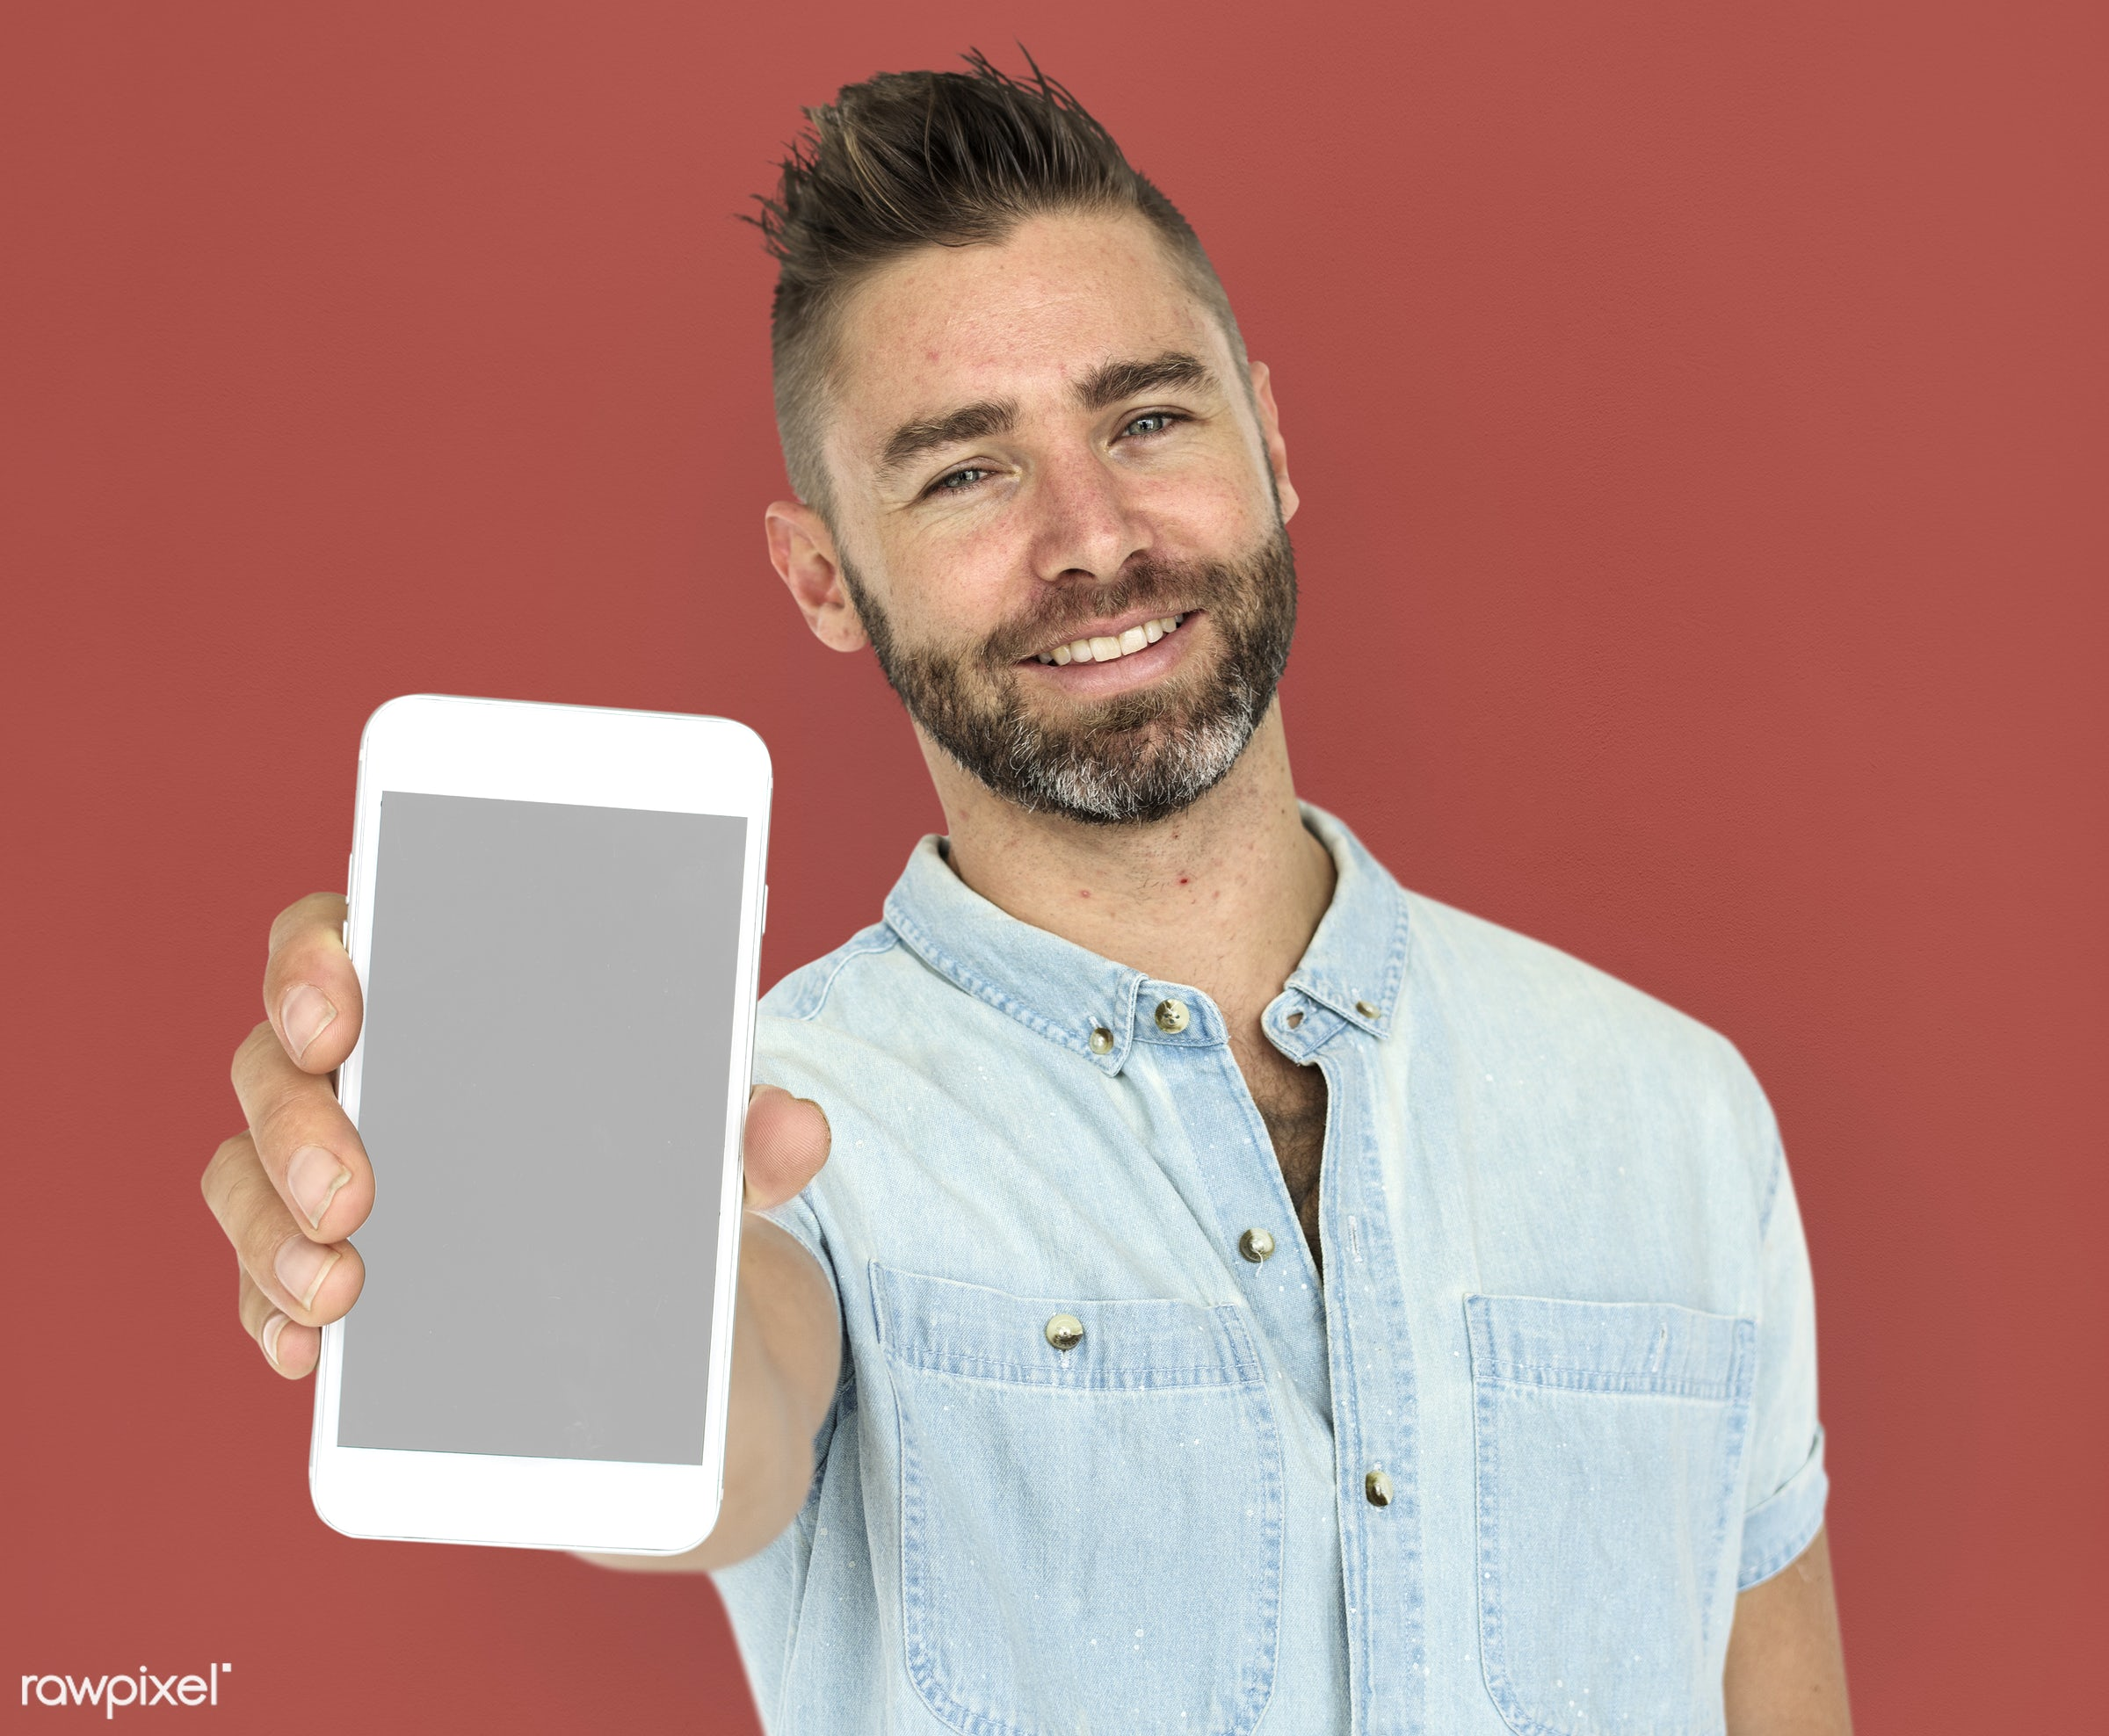 background, beard, brown, caucasian, communication, device, emotion, expression, holding, holding phone, isolated, male, man...